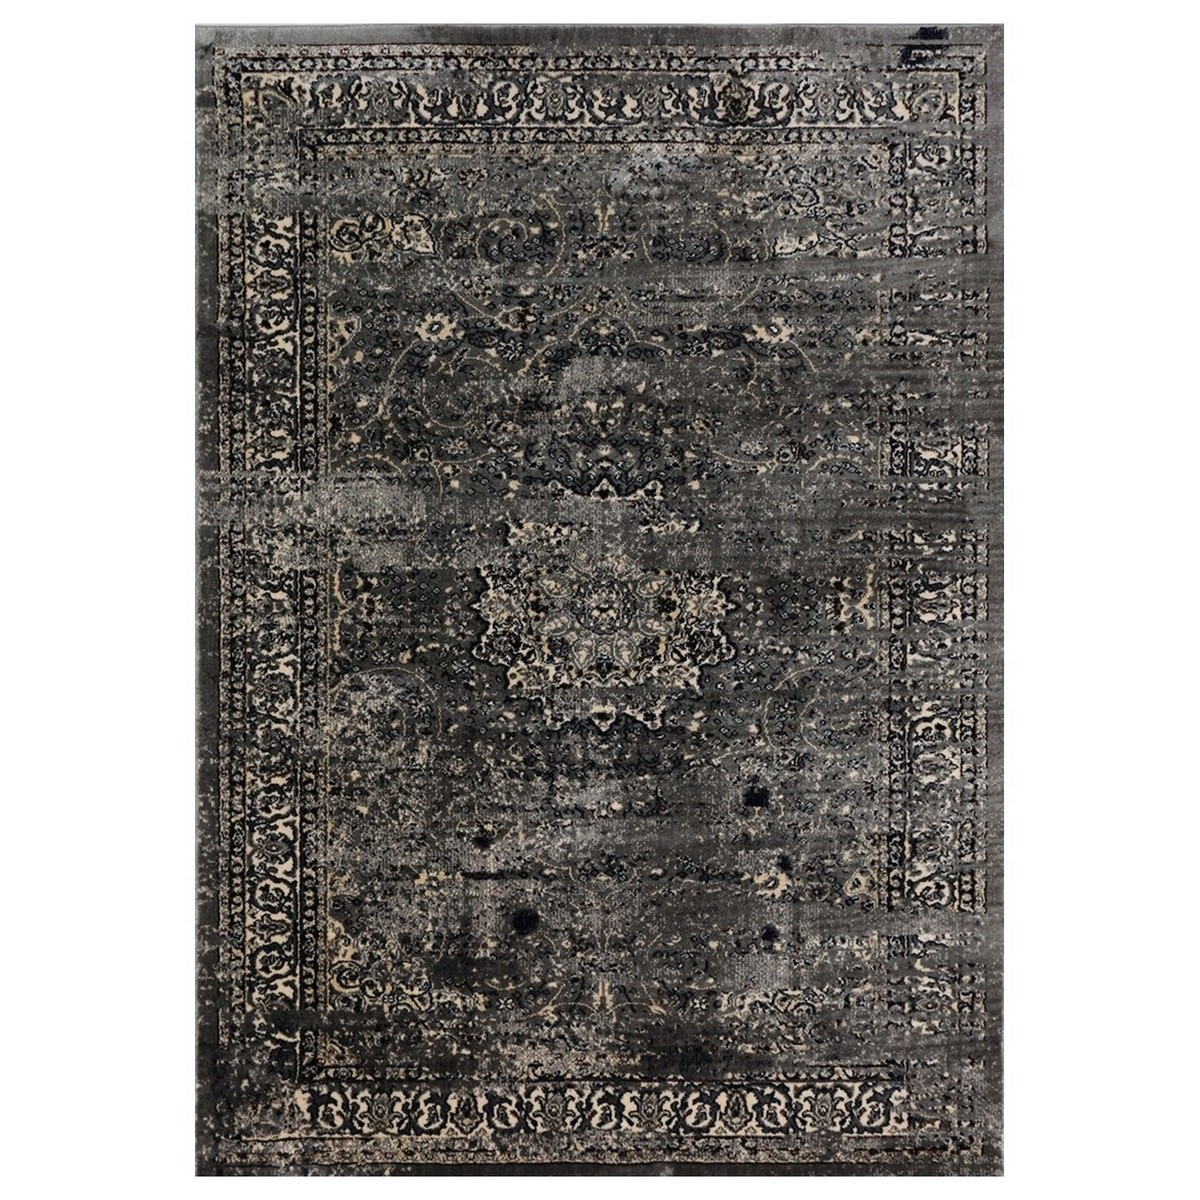 Artifact Parisa Distressed Oriental Rug, 160x230cm